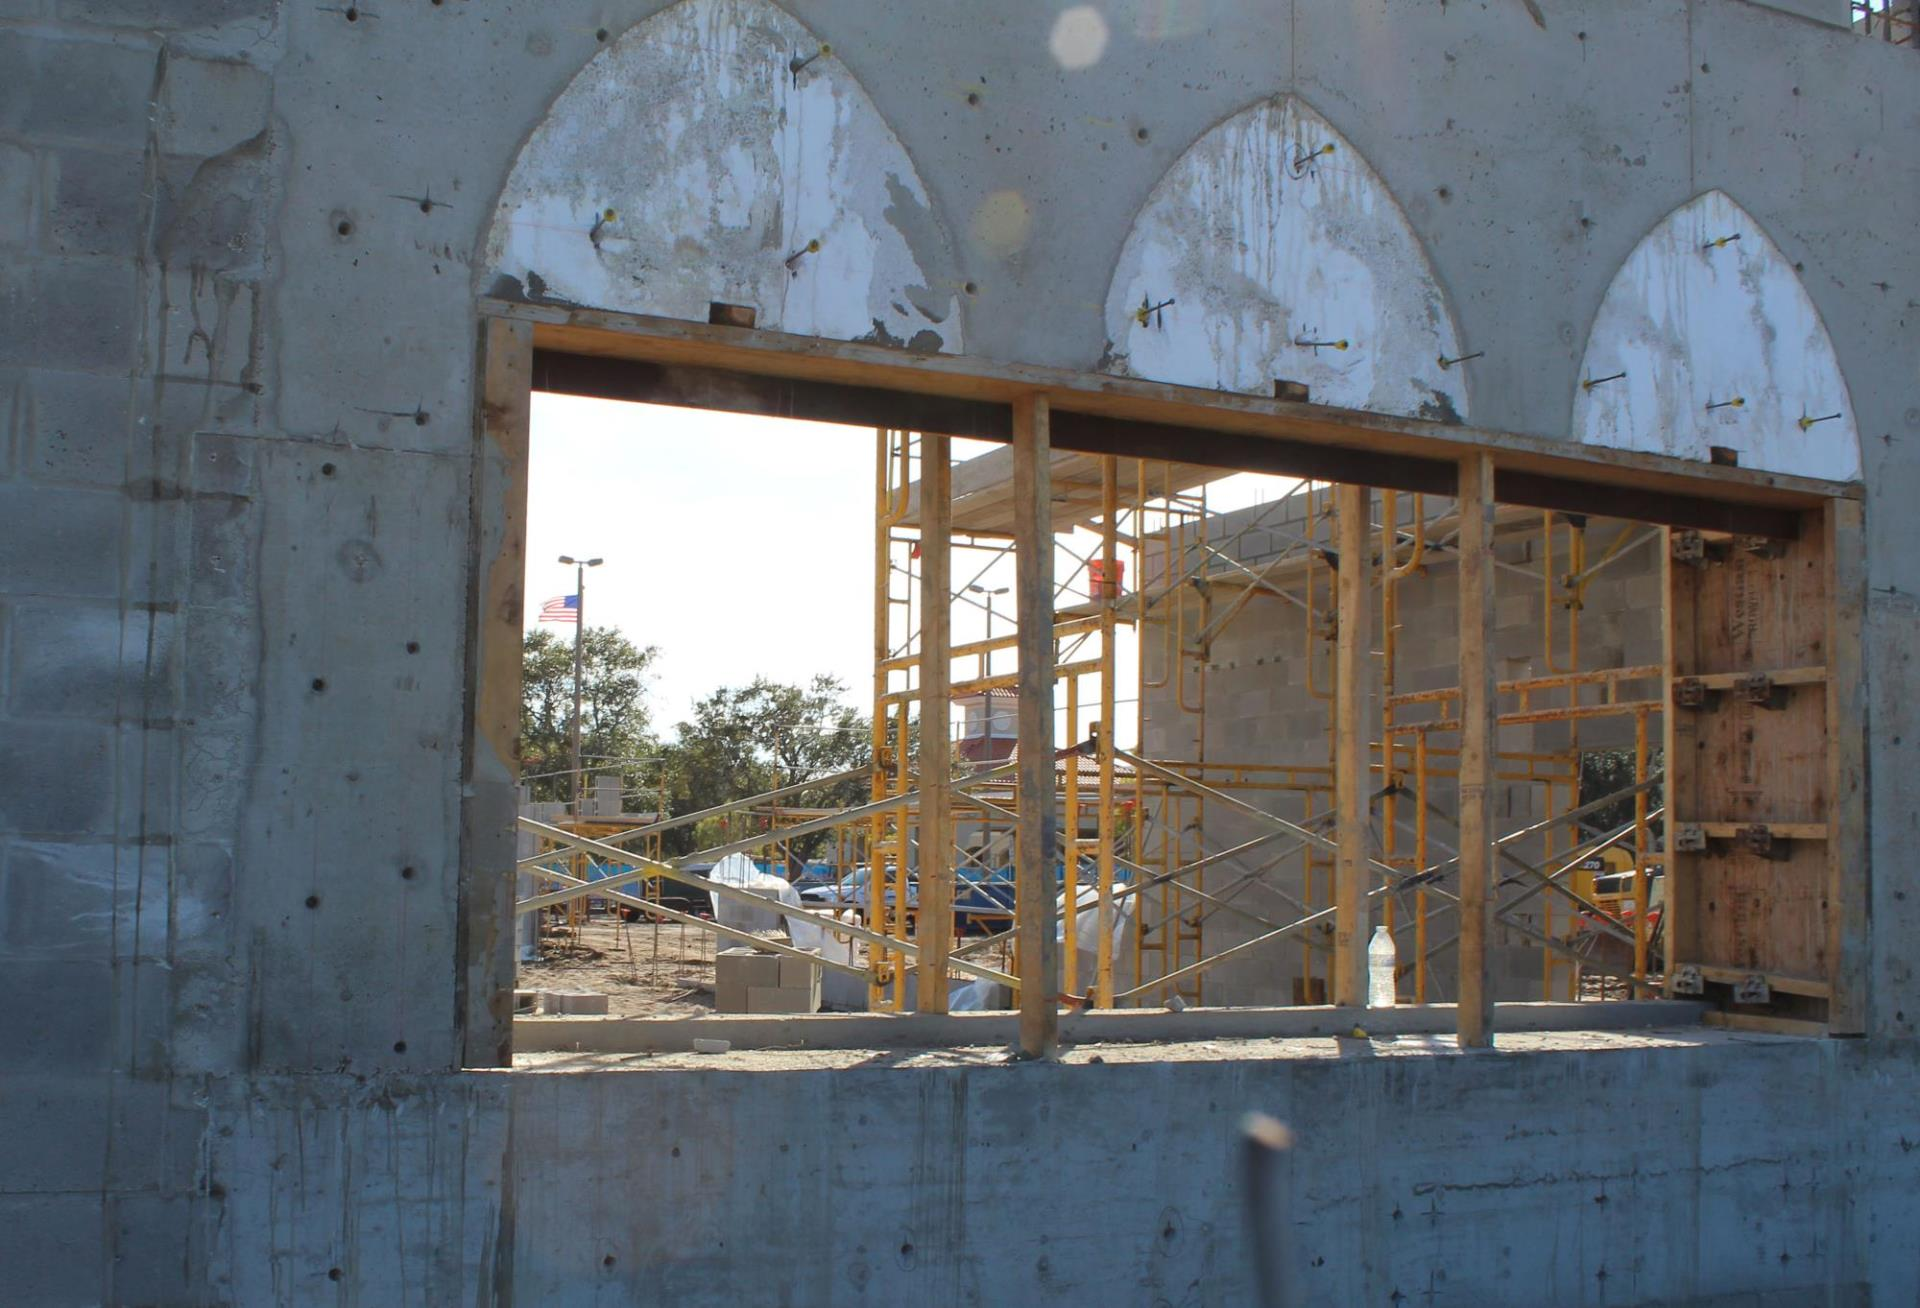 Getting the window arches framed and cement poured.